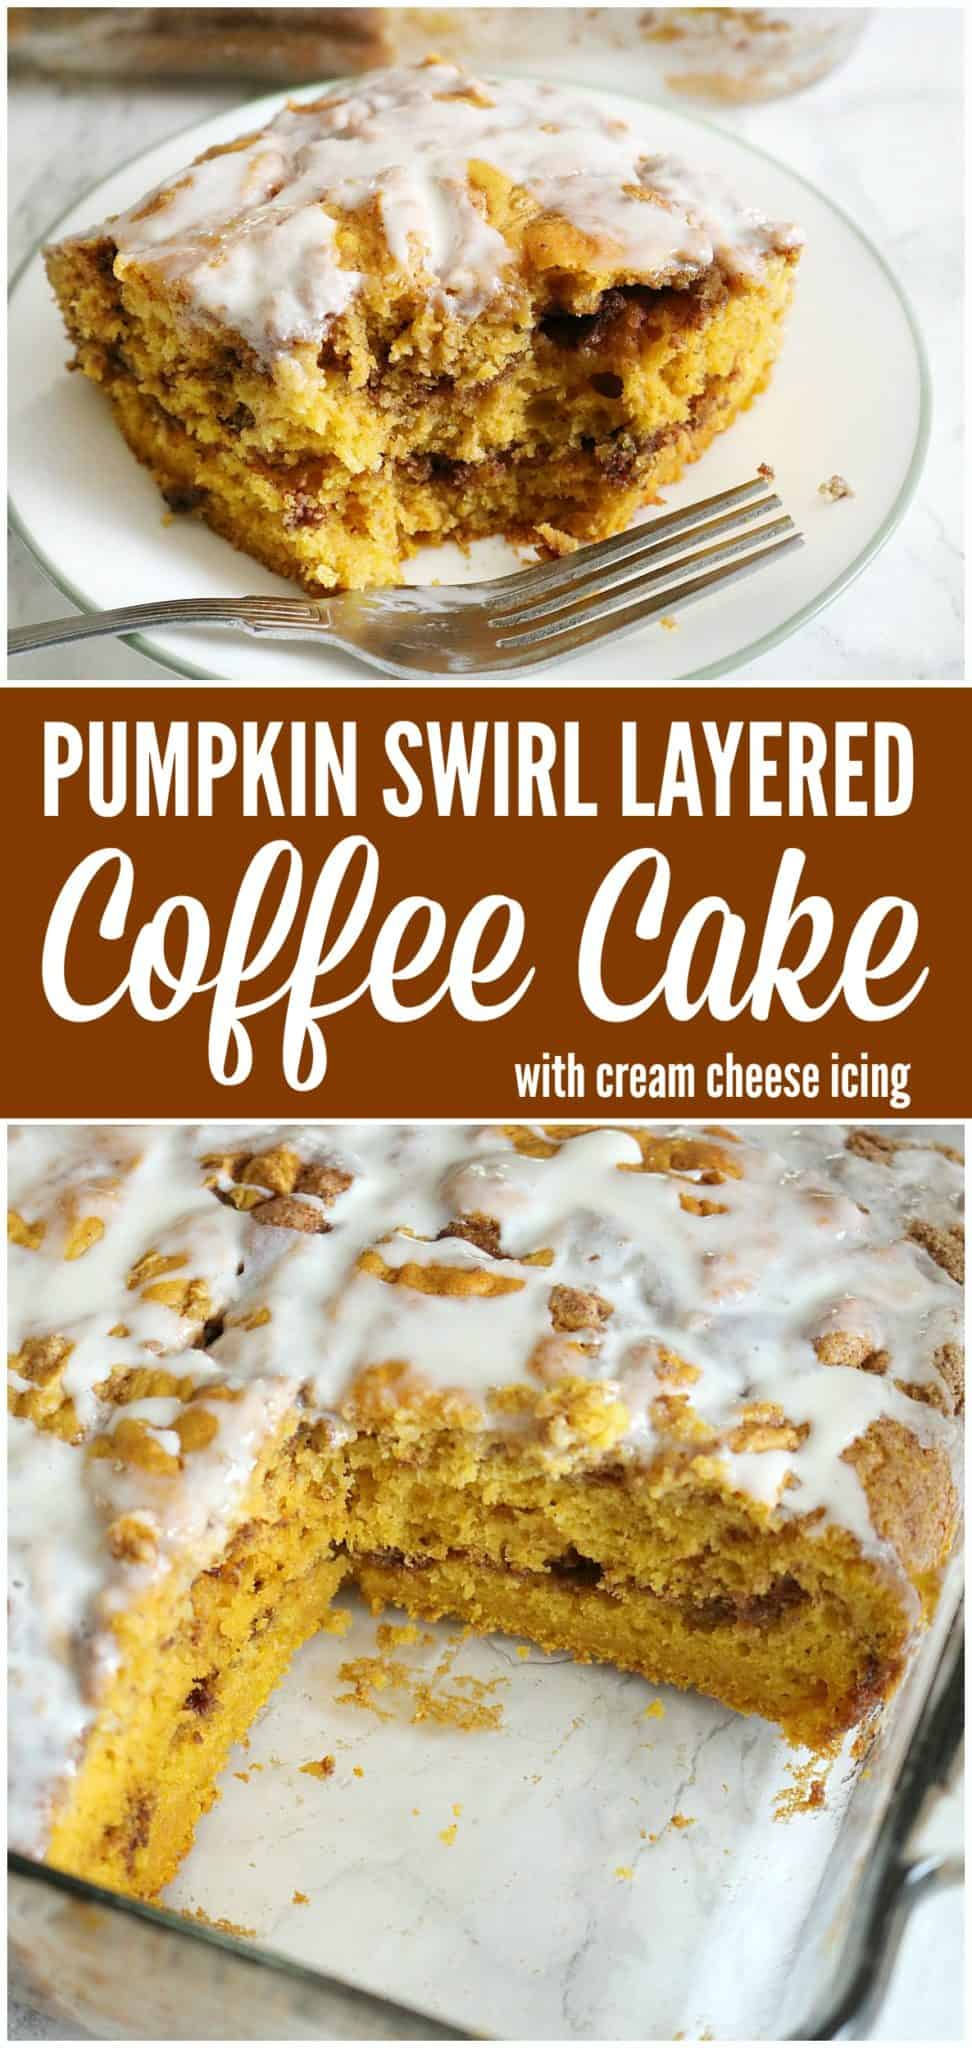 pumpkin swirl layered coffee cake